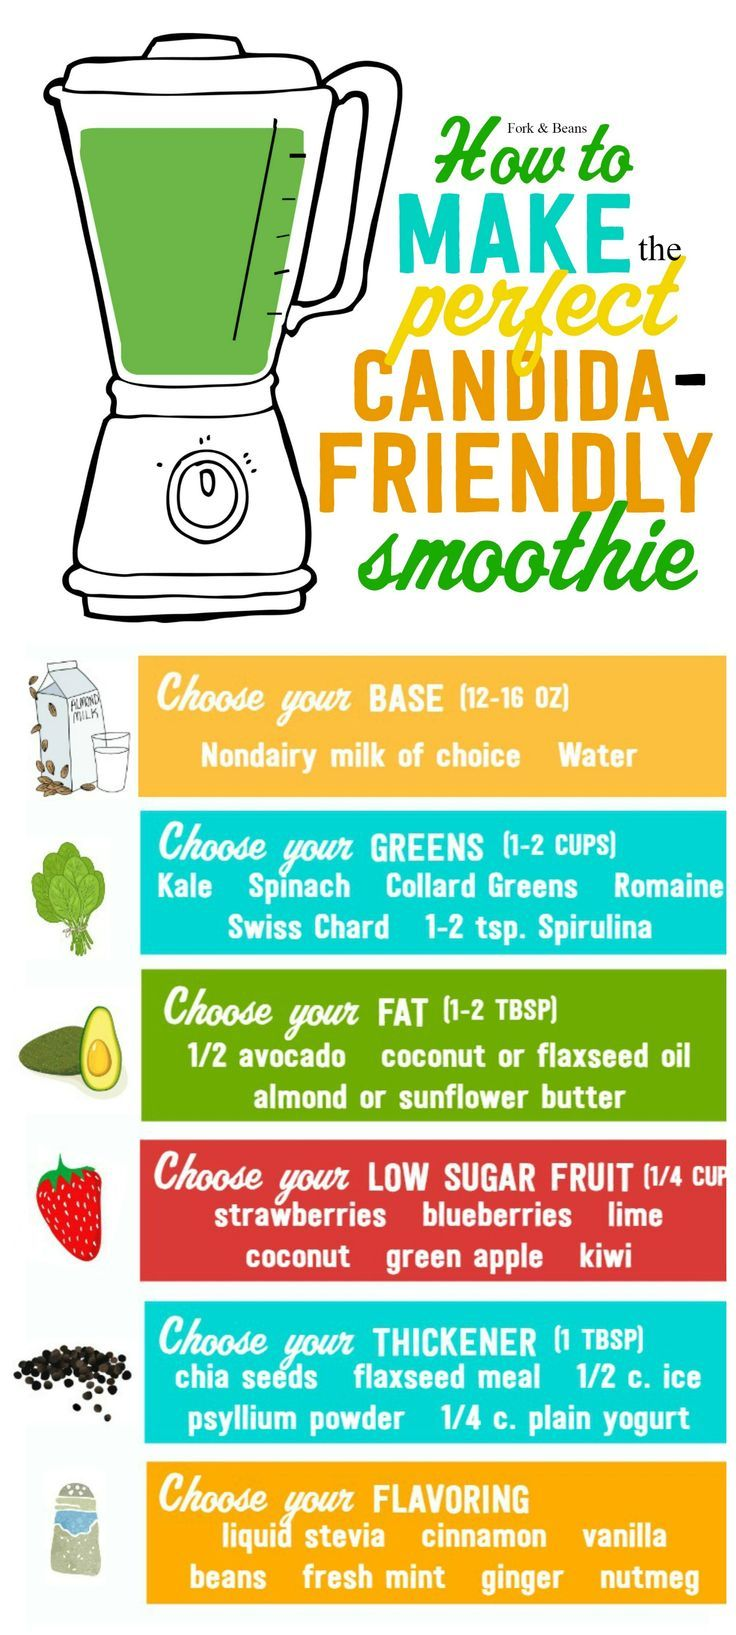 Your guide to creating your own easy, healthy, and low sugar green smoothie, perfect for those on an anti-candida diet. #smoothie